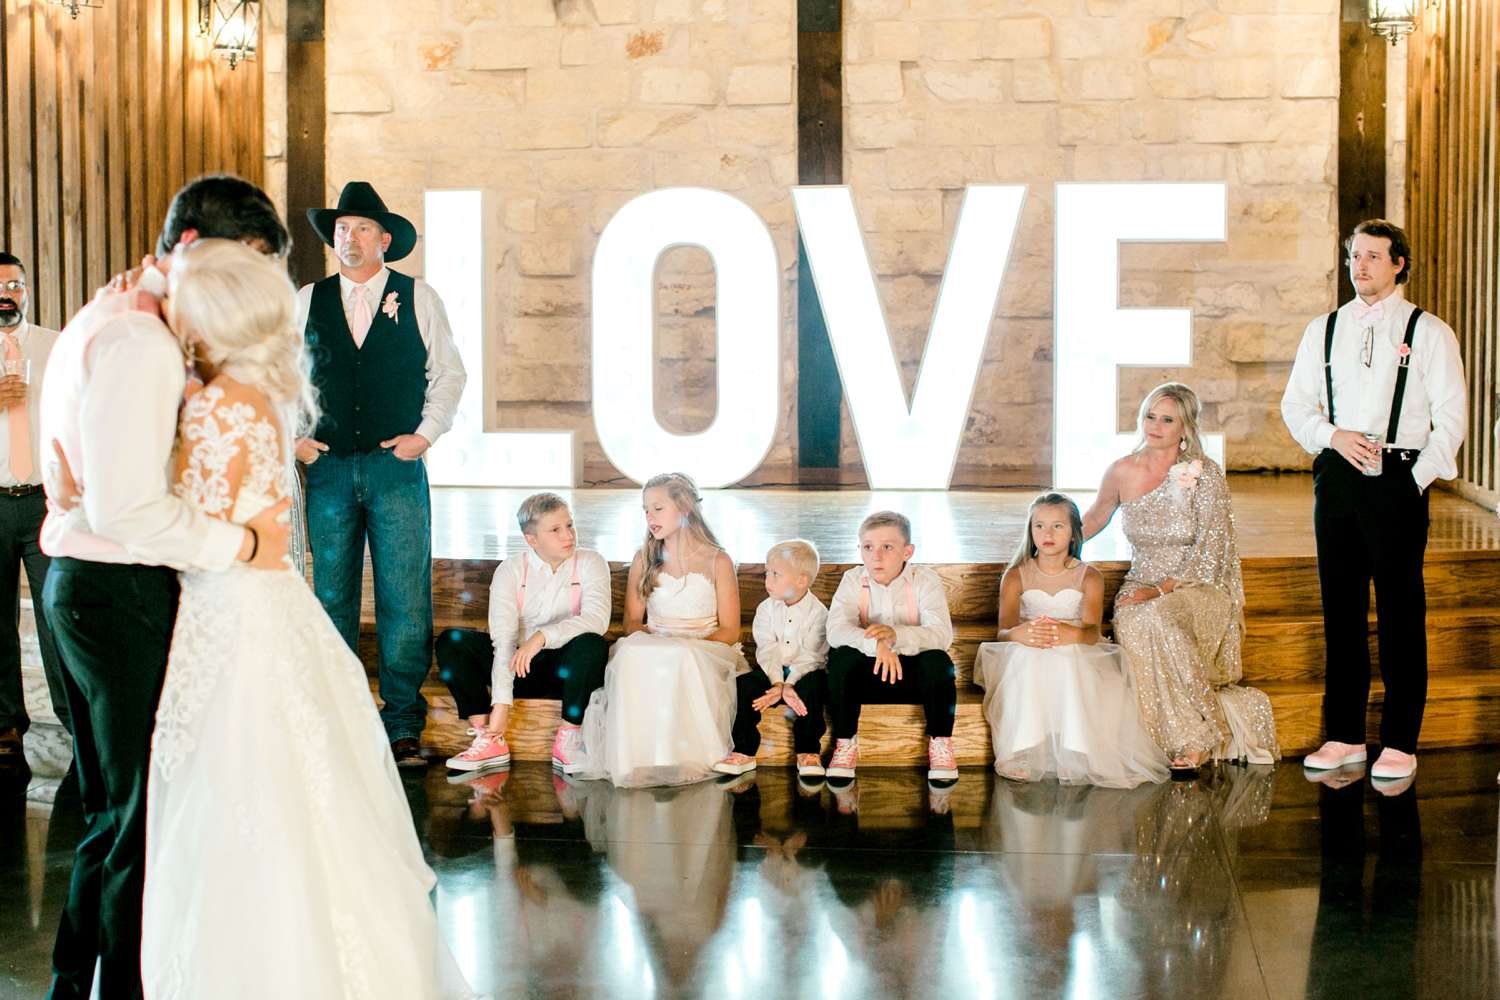 JESSICA+LYLE+NEEL+THE_SPRINGS_EVENTS_WEDDING_OKLAHOMA_ALLEEJ_PHOTOGRAPHER_0122.jpg